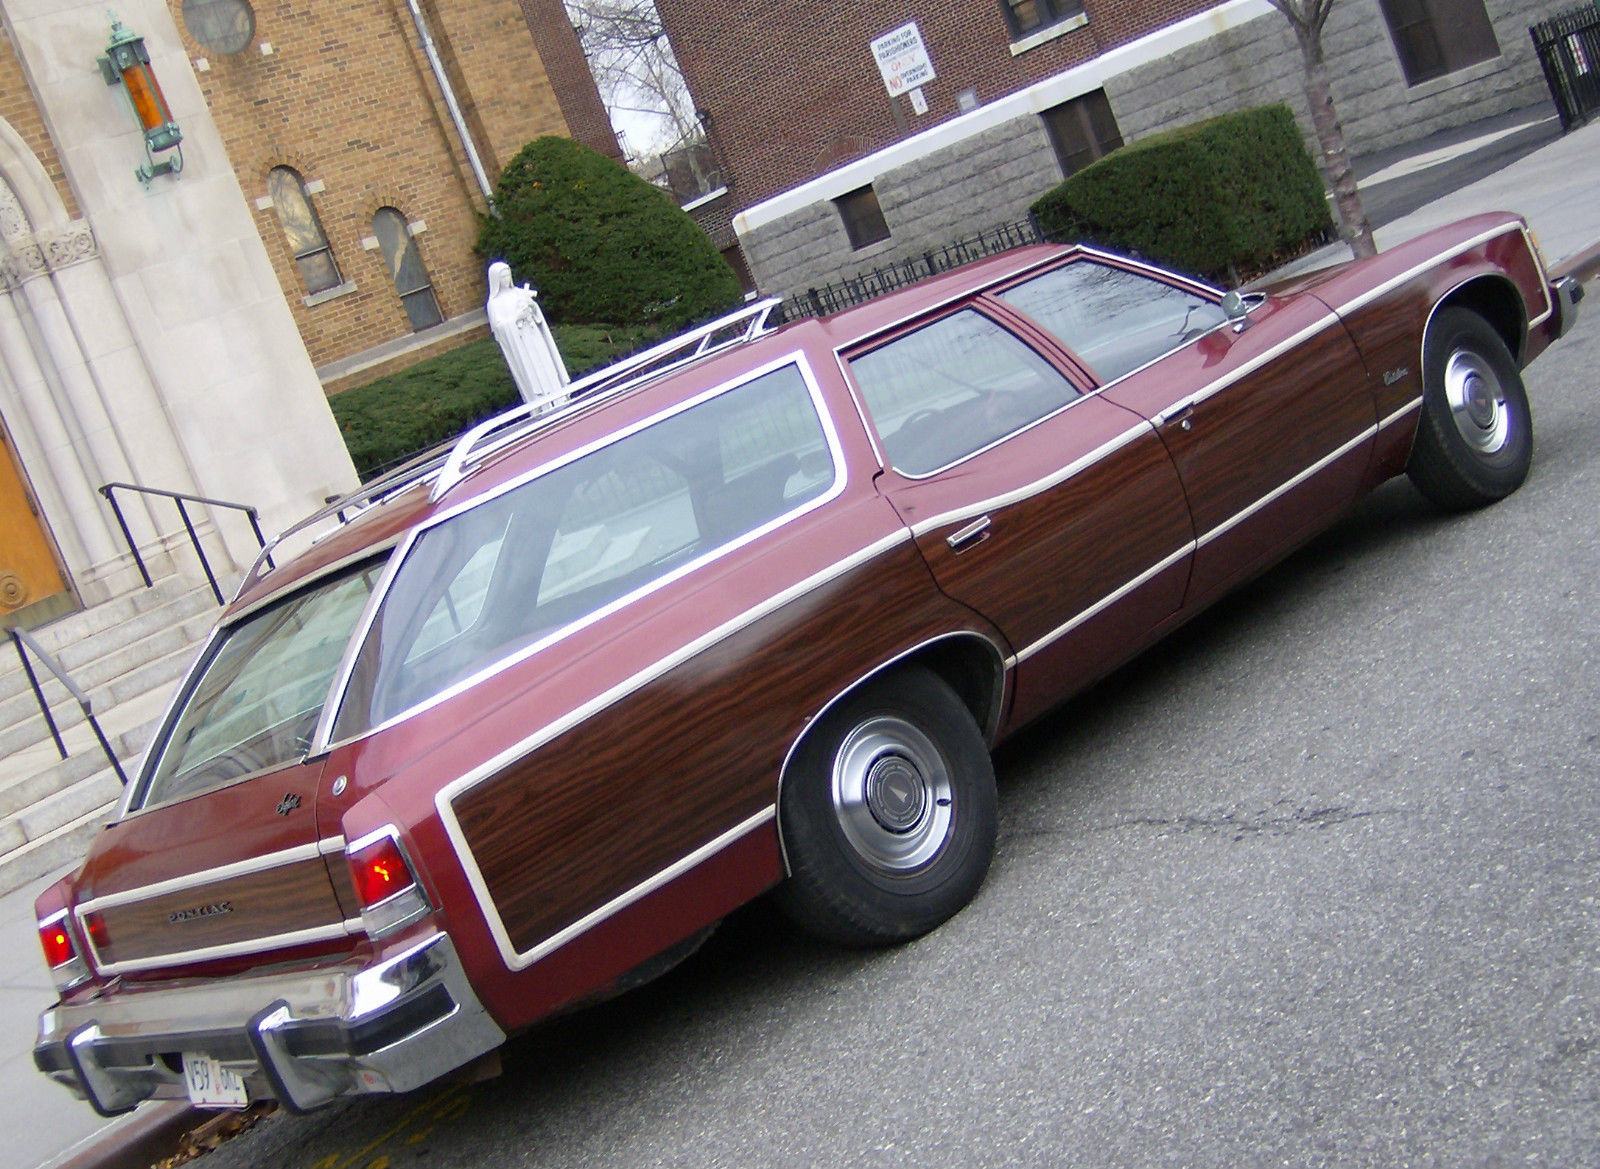 1975 Pontiac Catalina Safari Woody Wagon 35K Original ... |1975 Catalina Station Wagon Buick